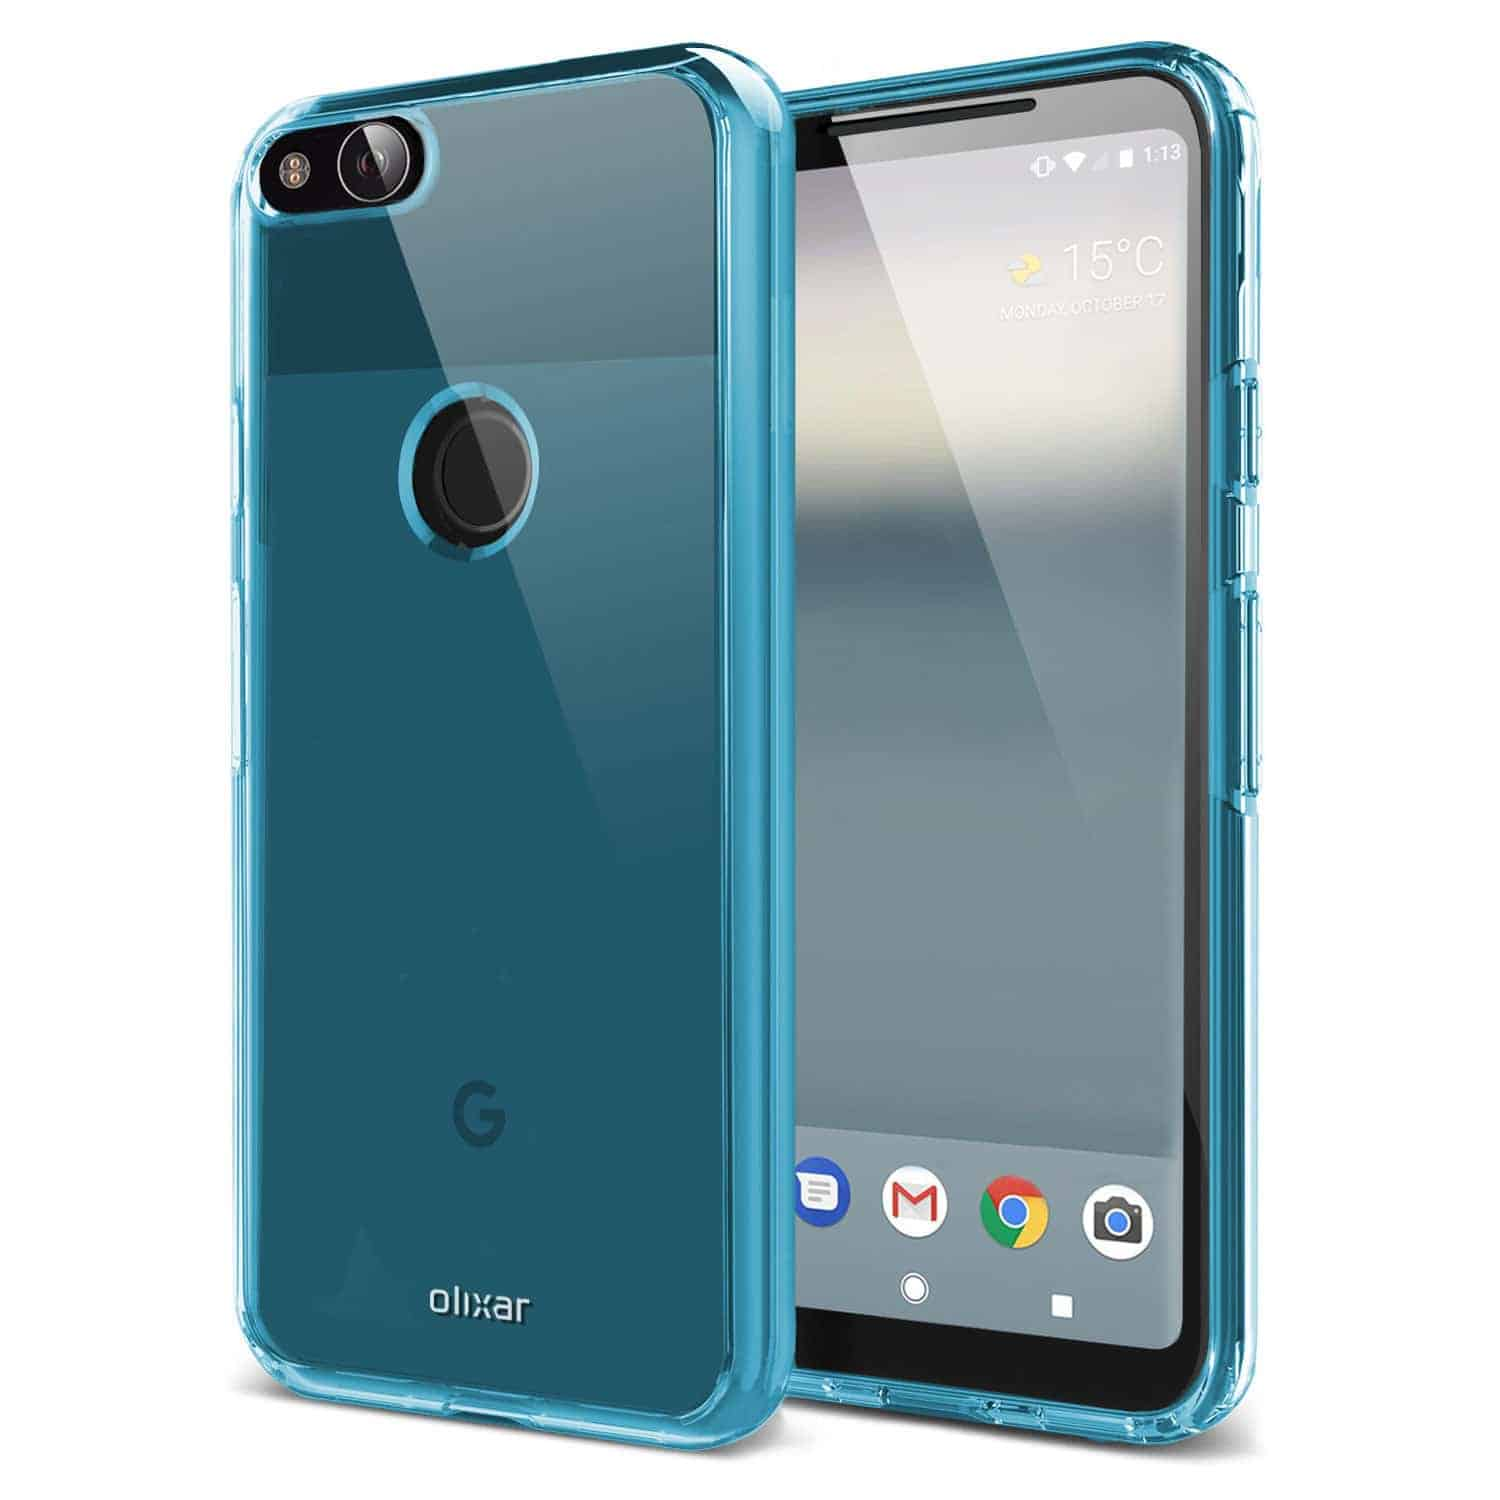 Olixar S Google Pixel 2 Amp Pixel Xl 2 Cases Are Now